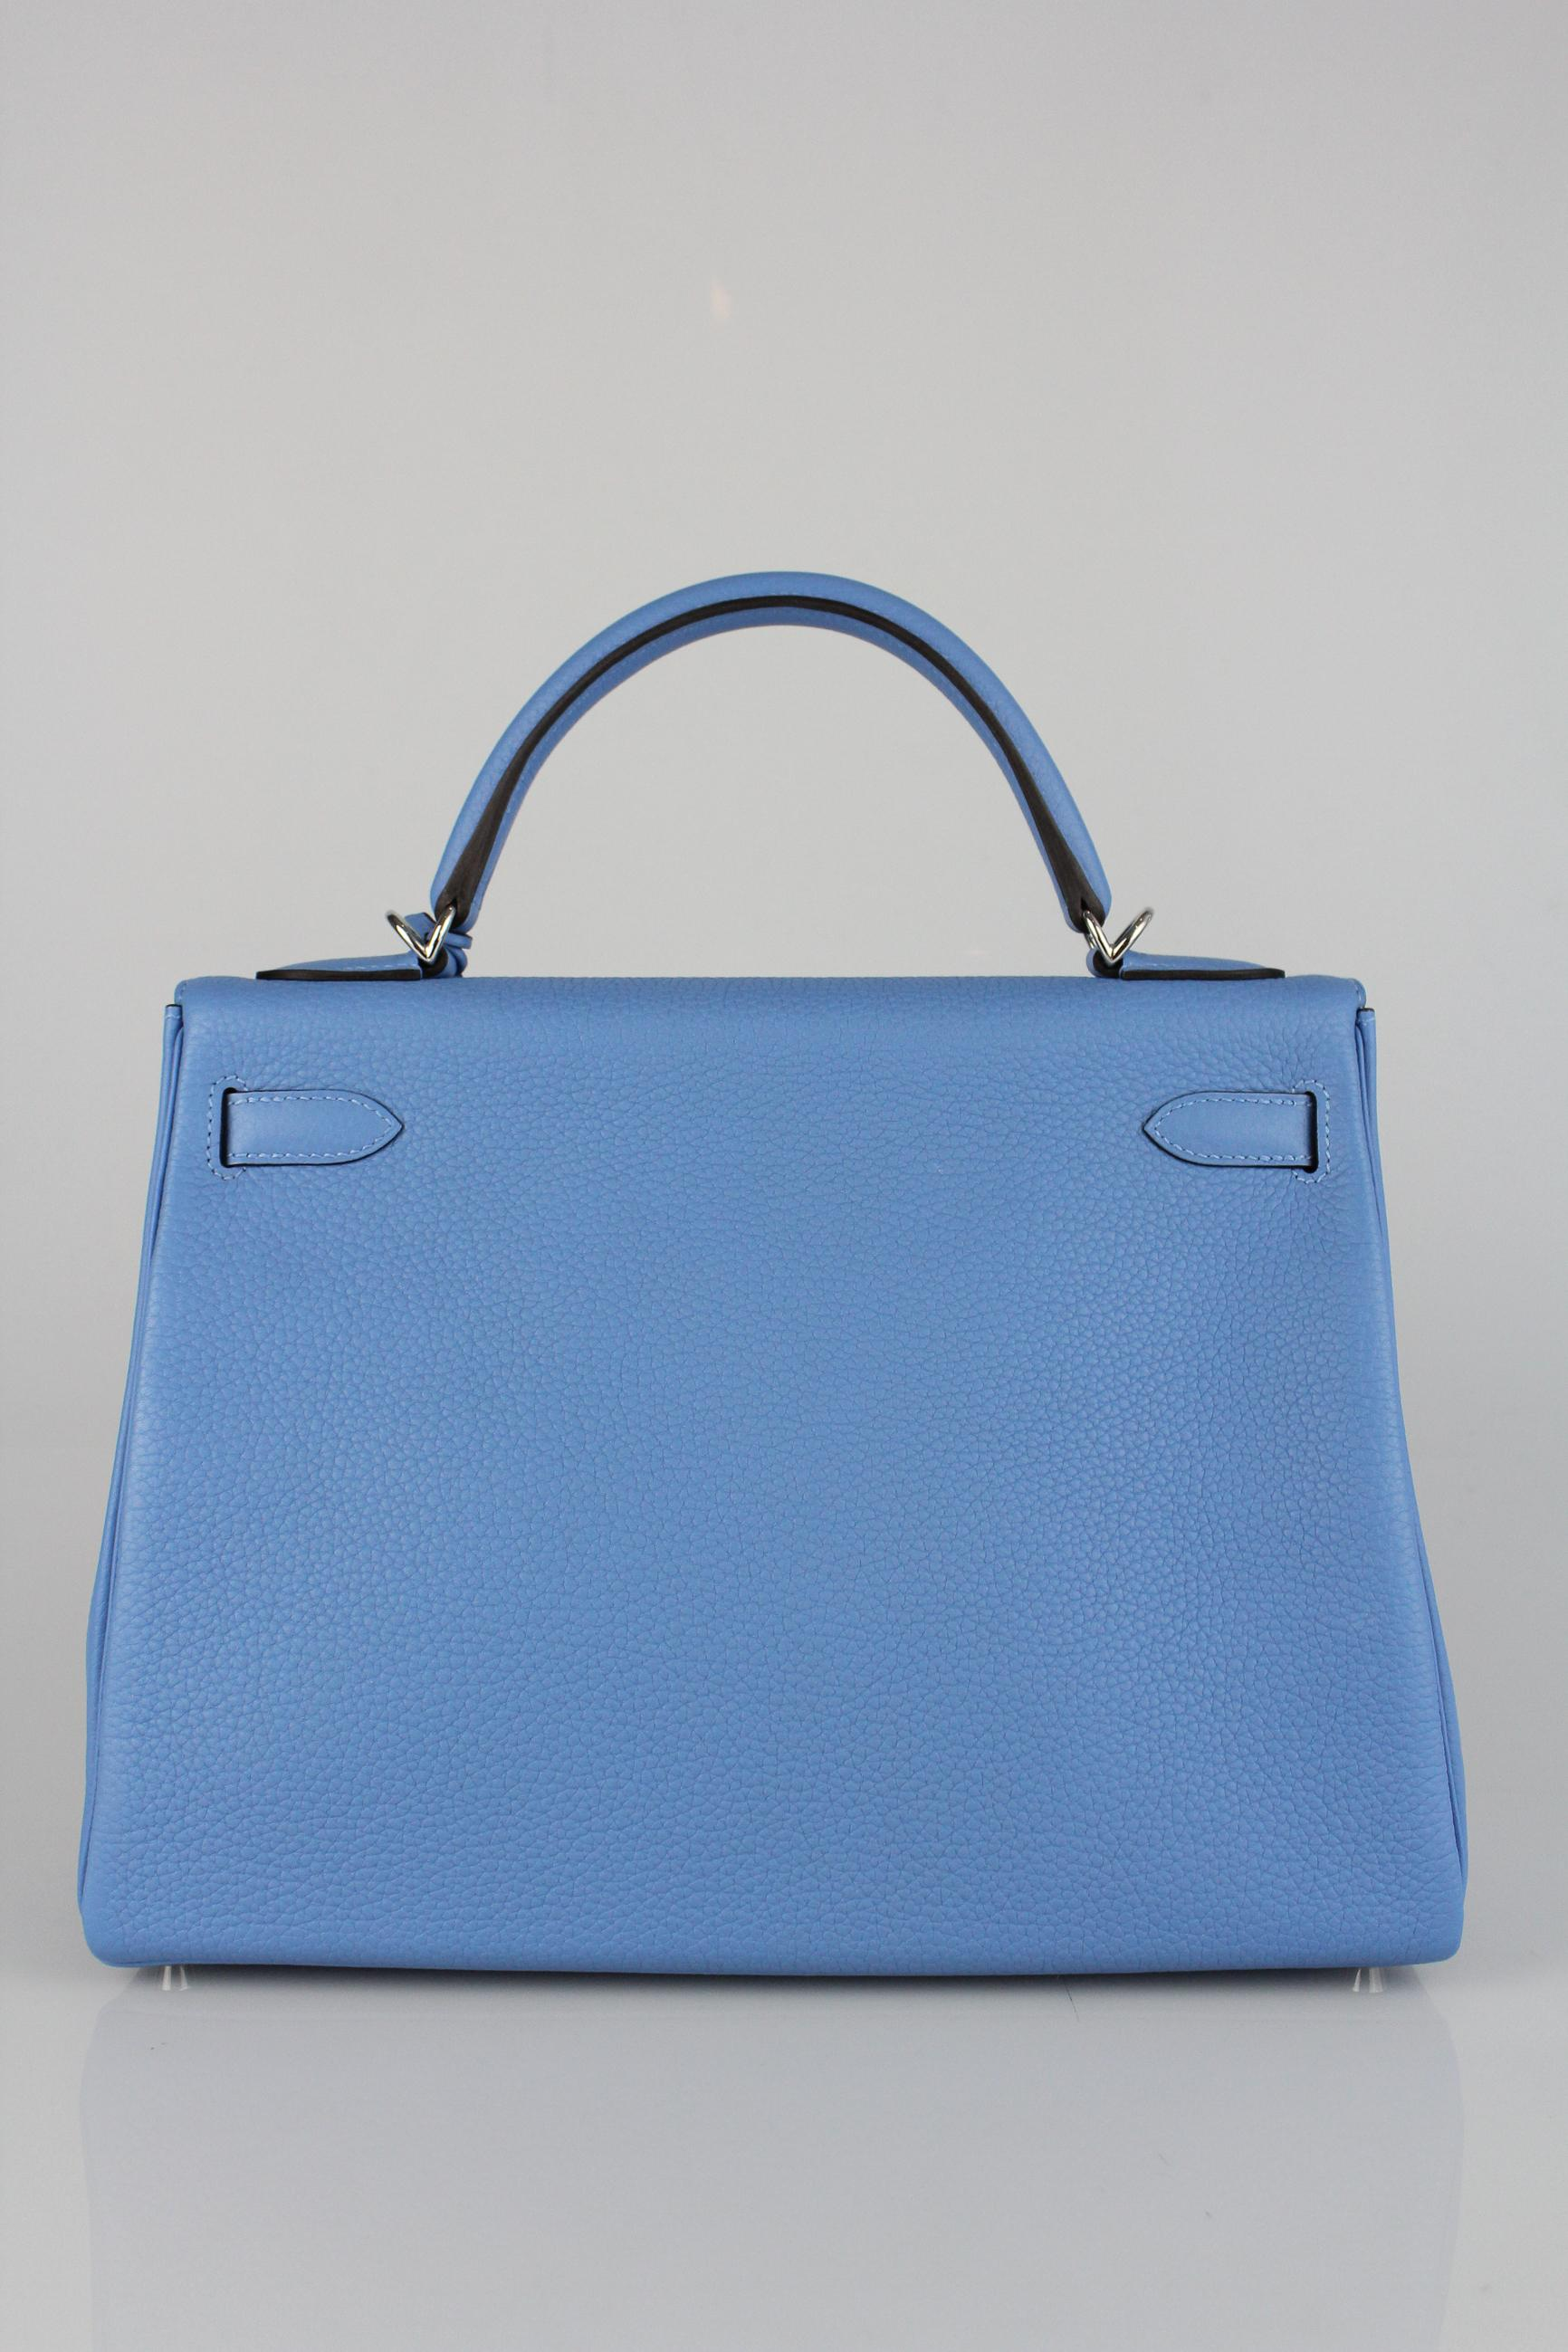 f74f60b5110b4 ... reduced hermès clemence leather kelly shoulder bag. 123456789101112  5aa76 bcee8